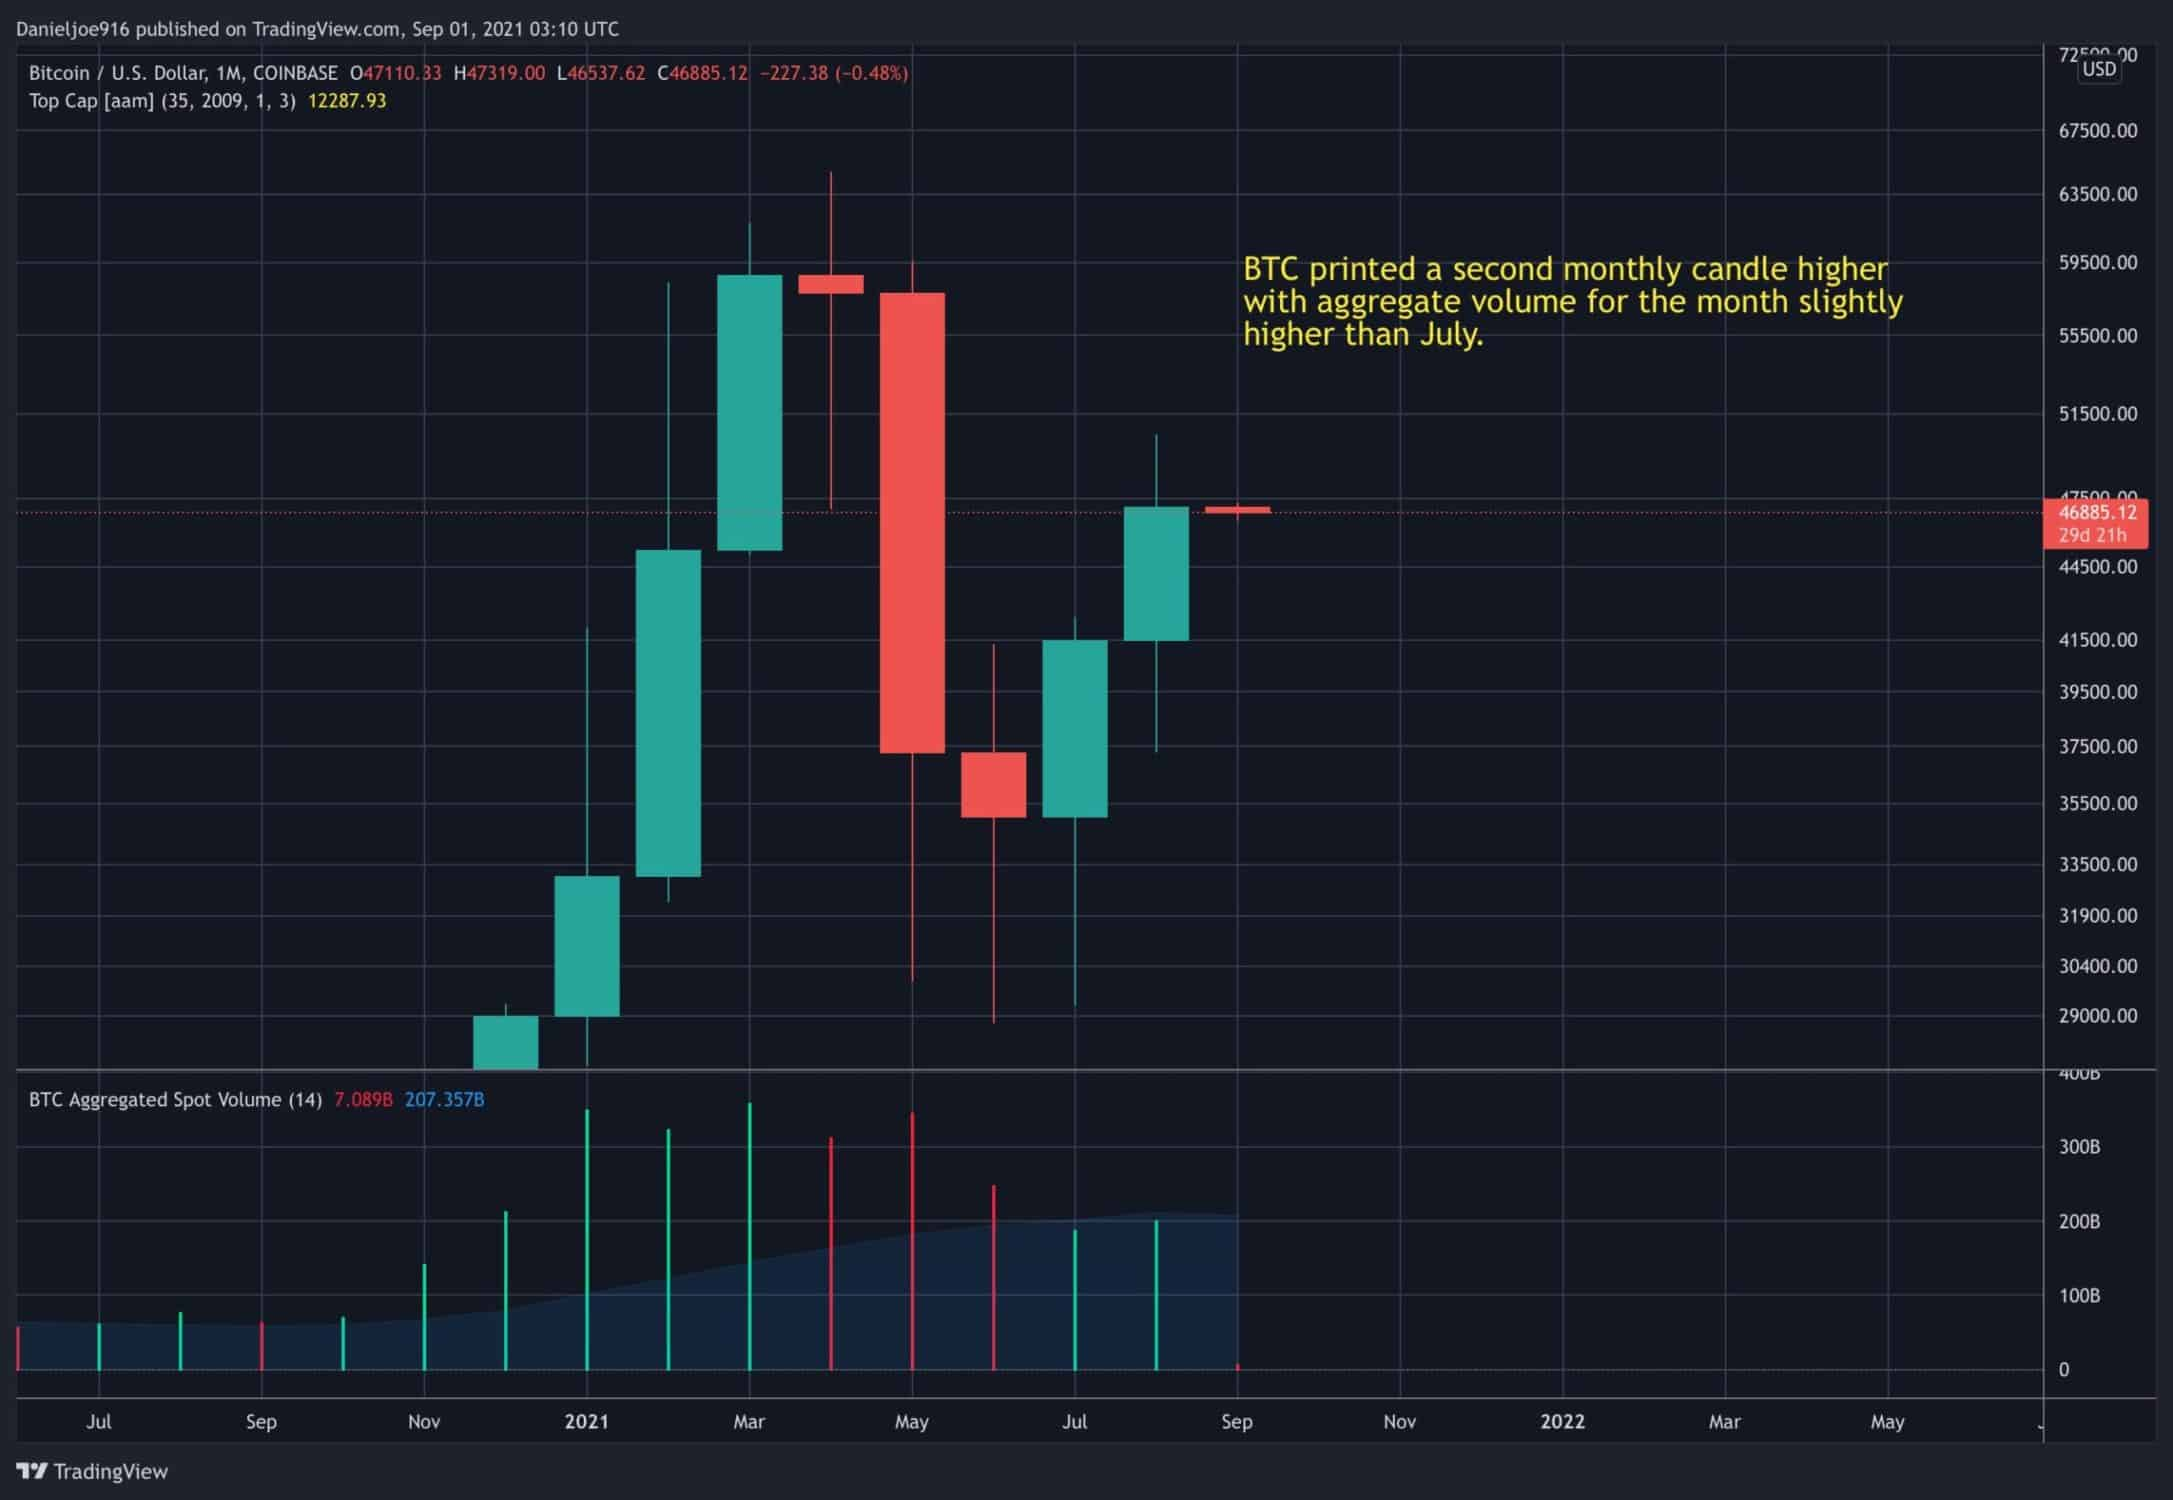 BTC Makes 2nd Consecutive Green Monthly Close, Time For Next Major Move?  (Bitcoin Price Analysis)